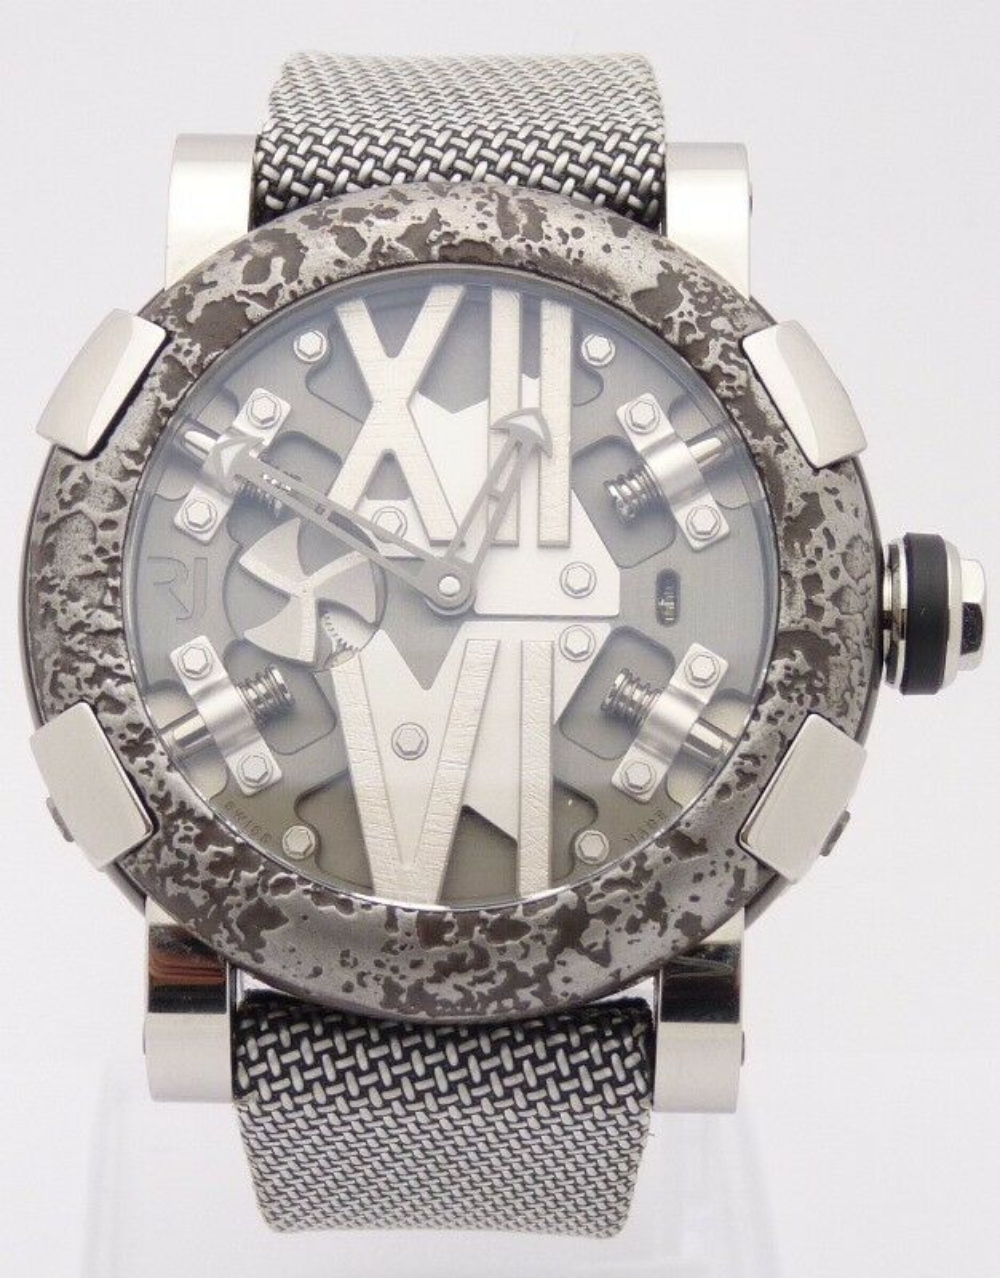 ROMAIN JEROME Men's Steampunk Stainless Steel Limited Edition Watch RJ.T.AU.SP.004.01